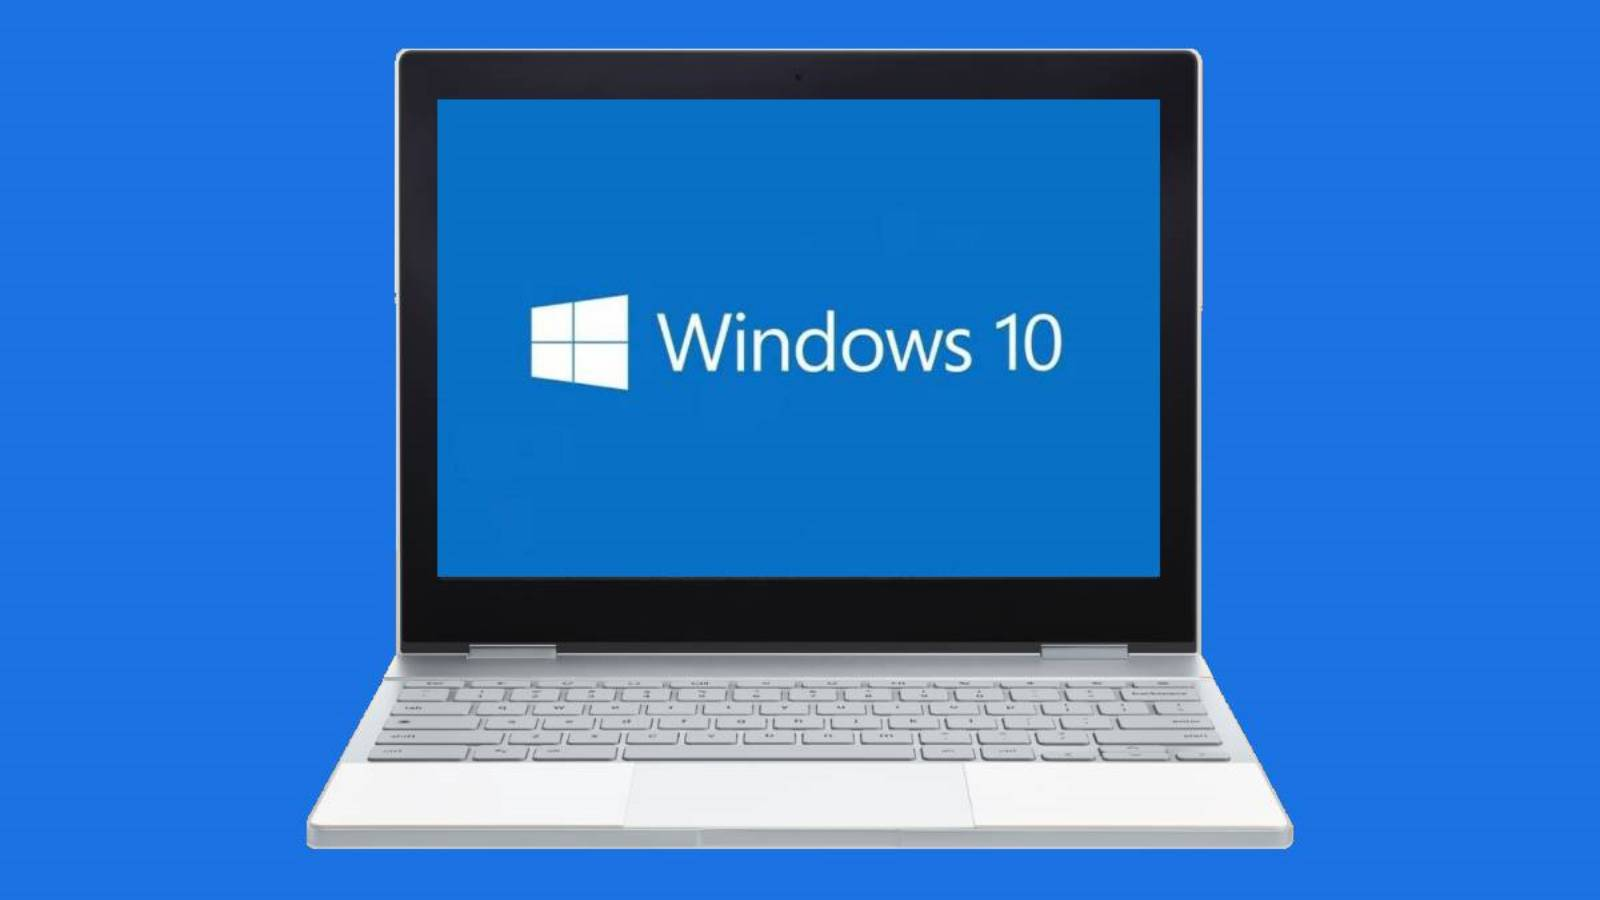 Windows 10. Nou Update IMPORTANT LANSAT de catre Microsoft